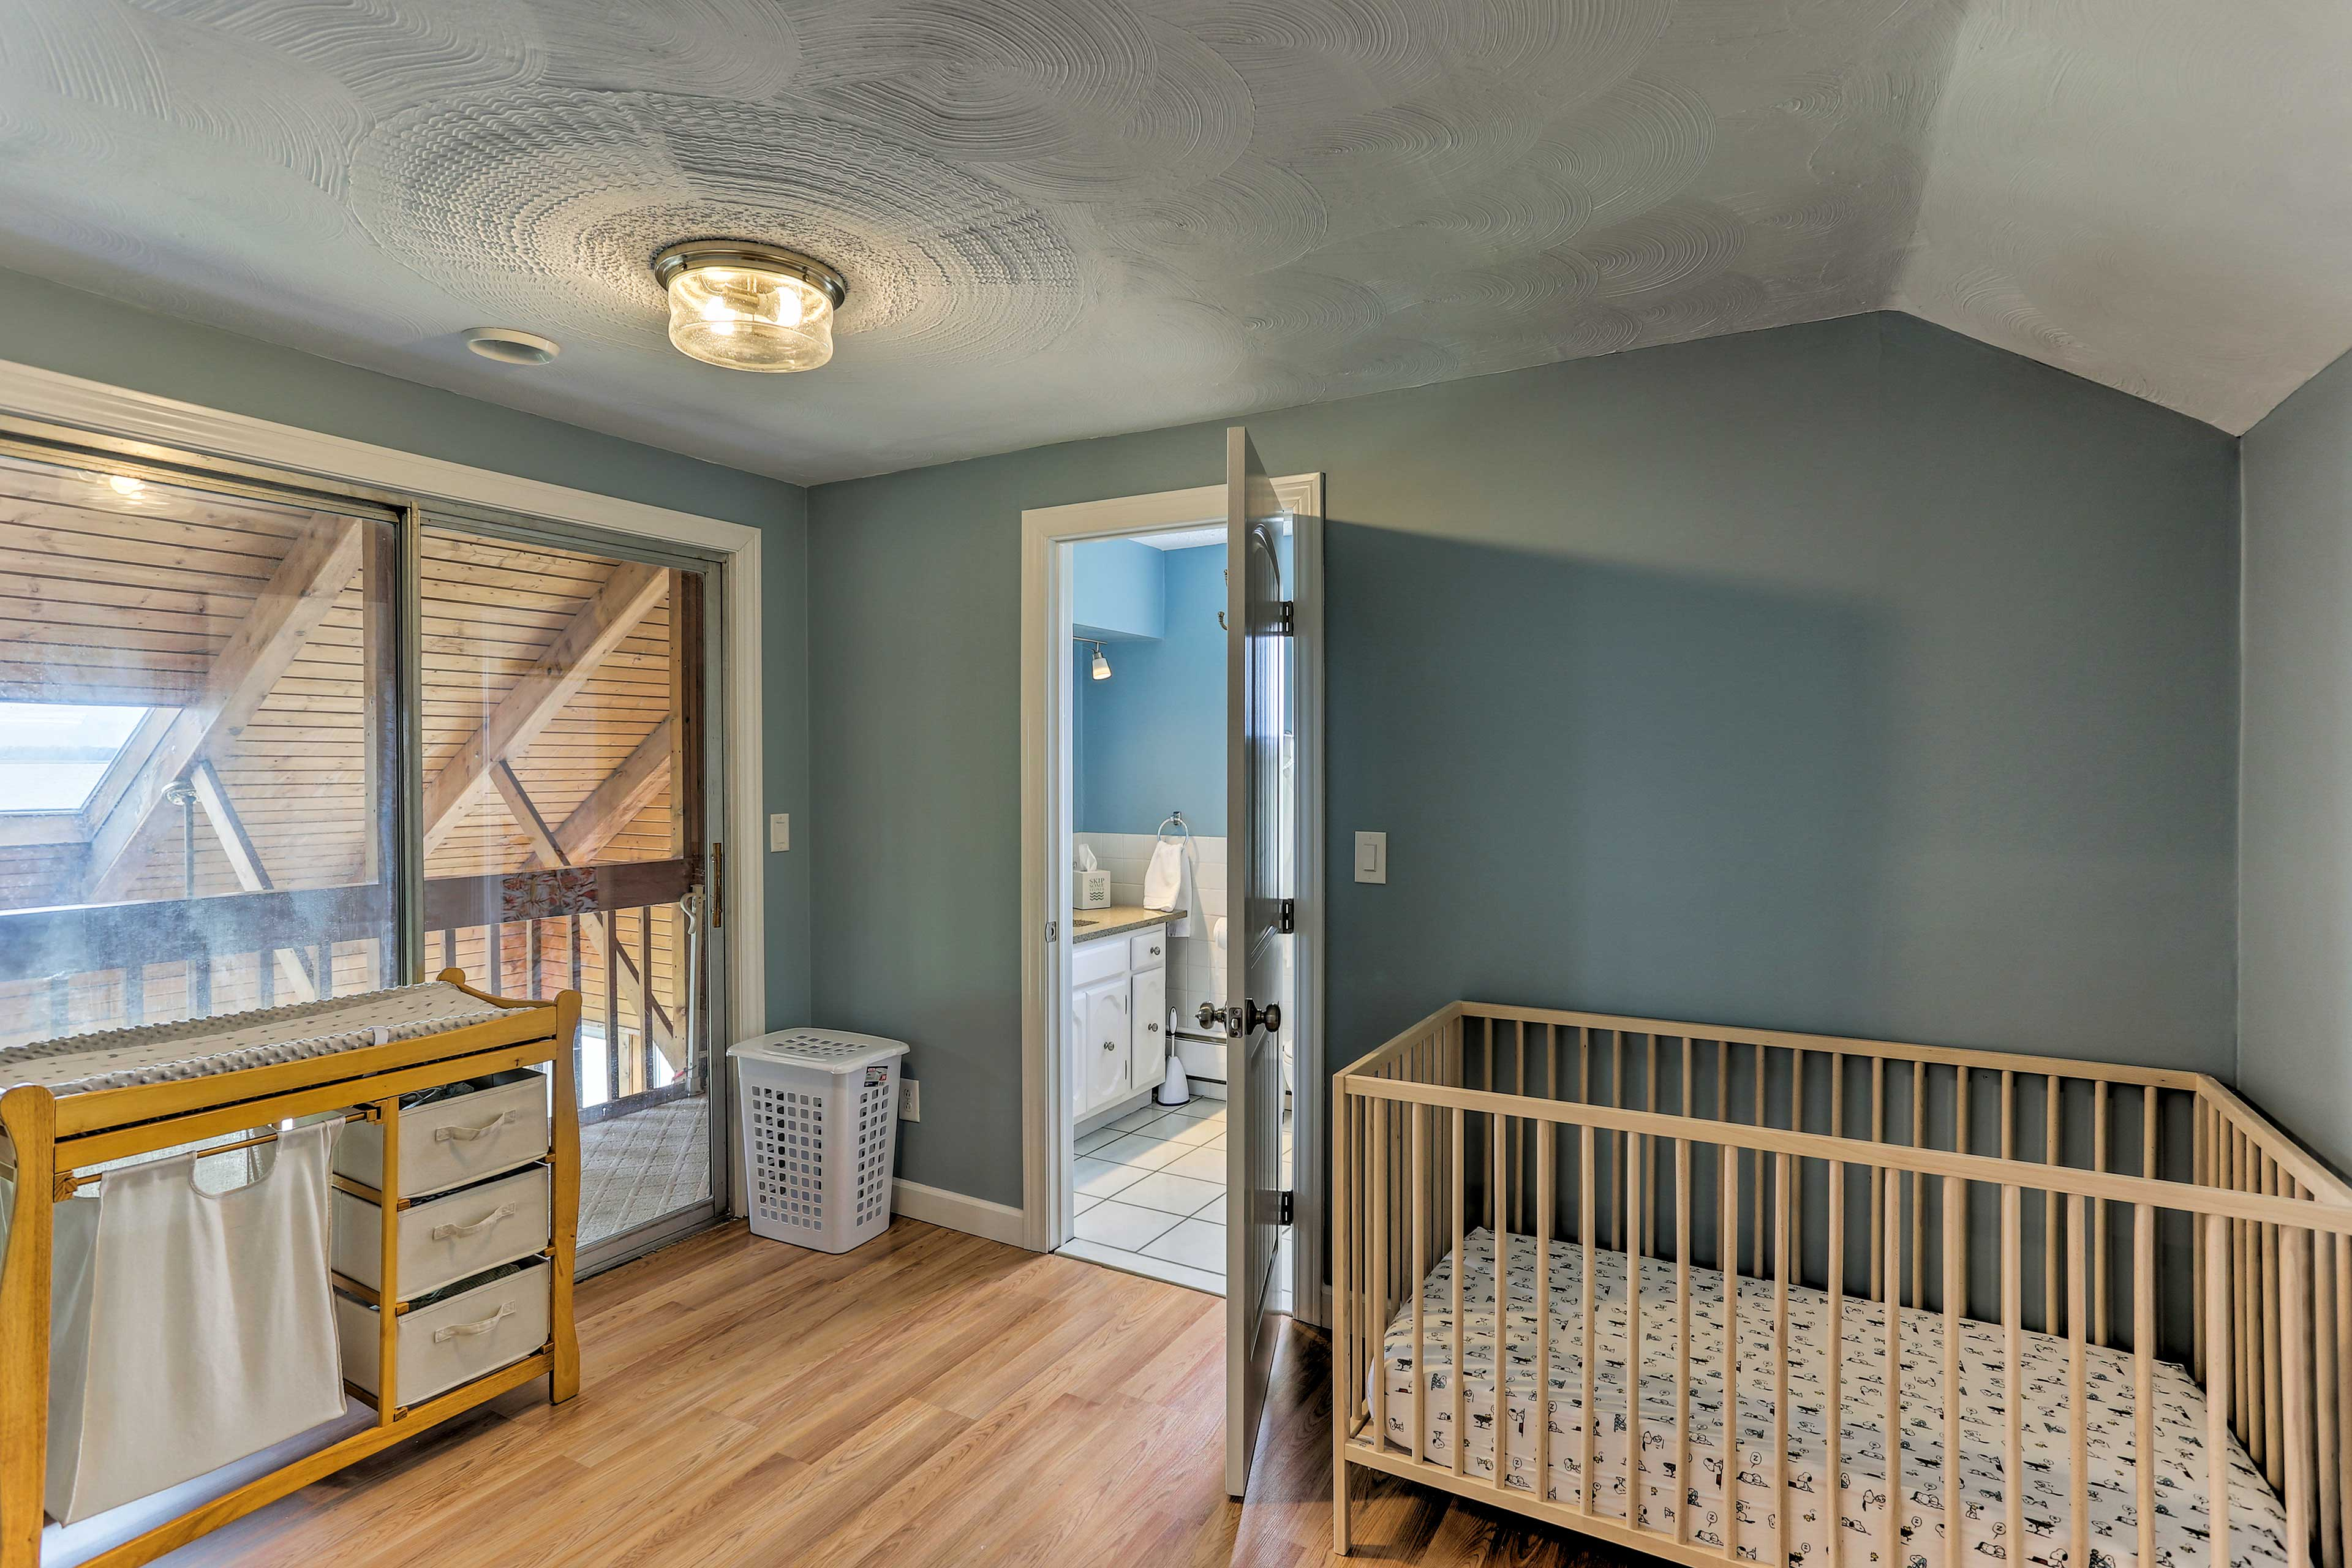 If you're traveling with little ones, a crib and changing table are available.